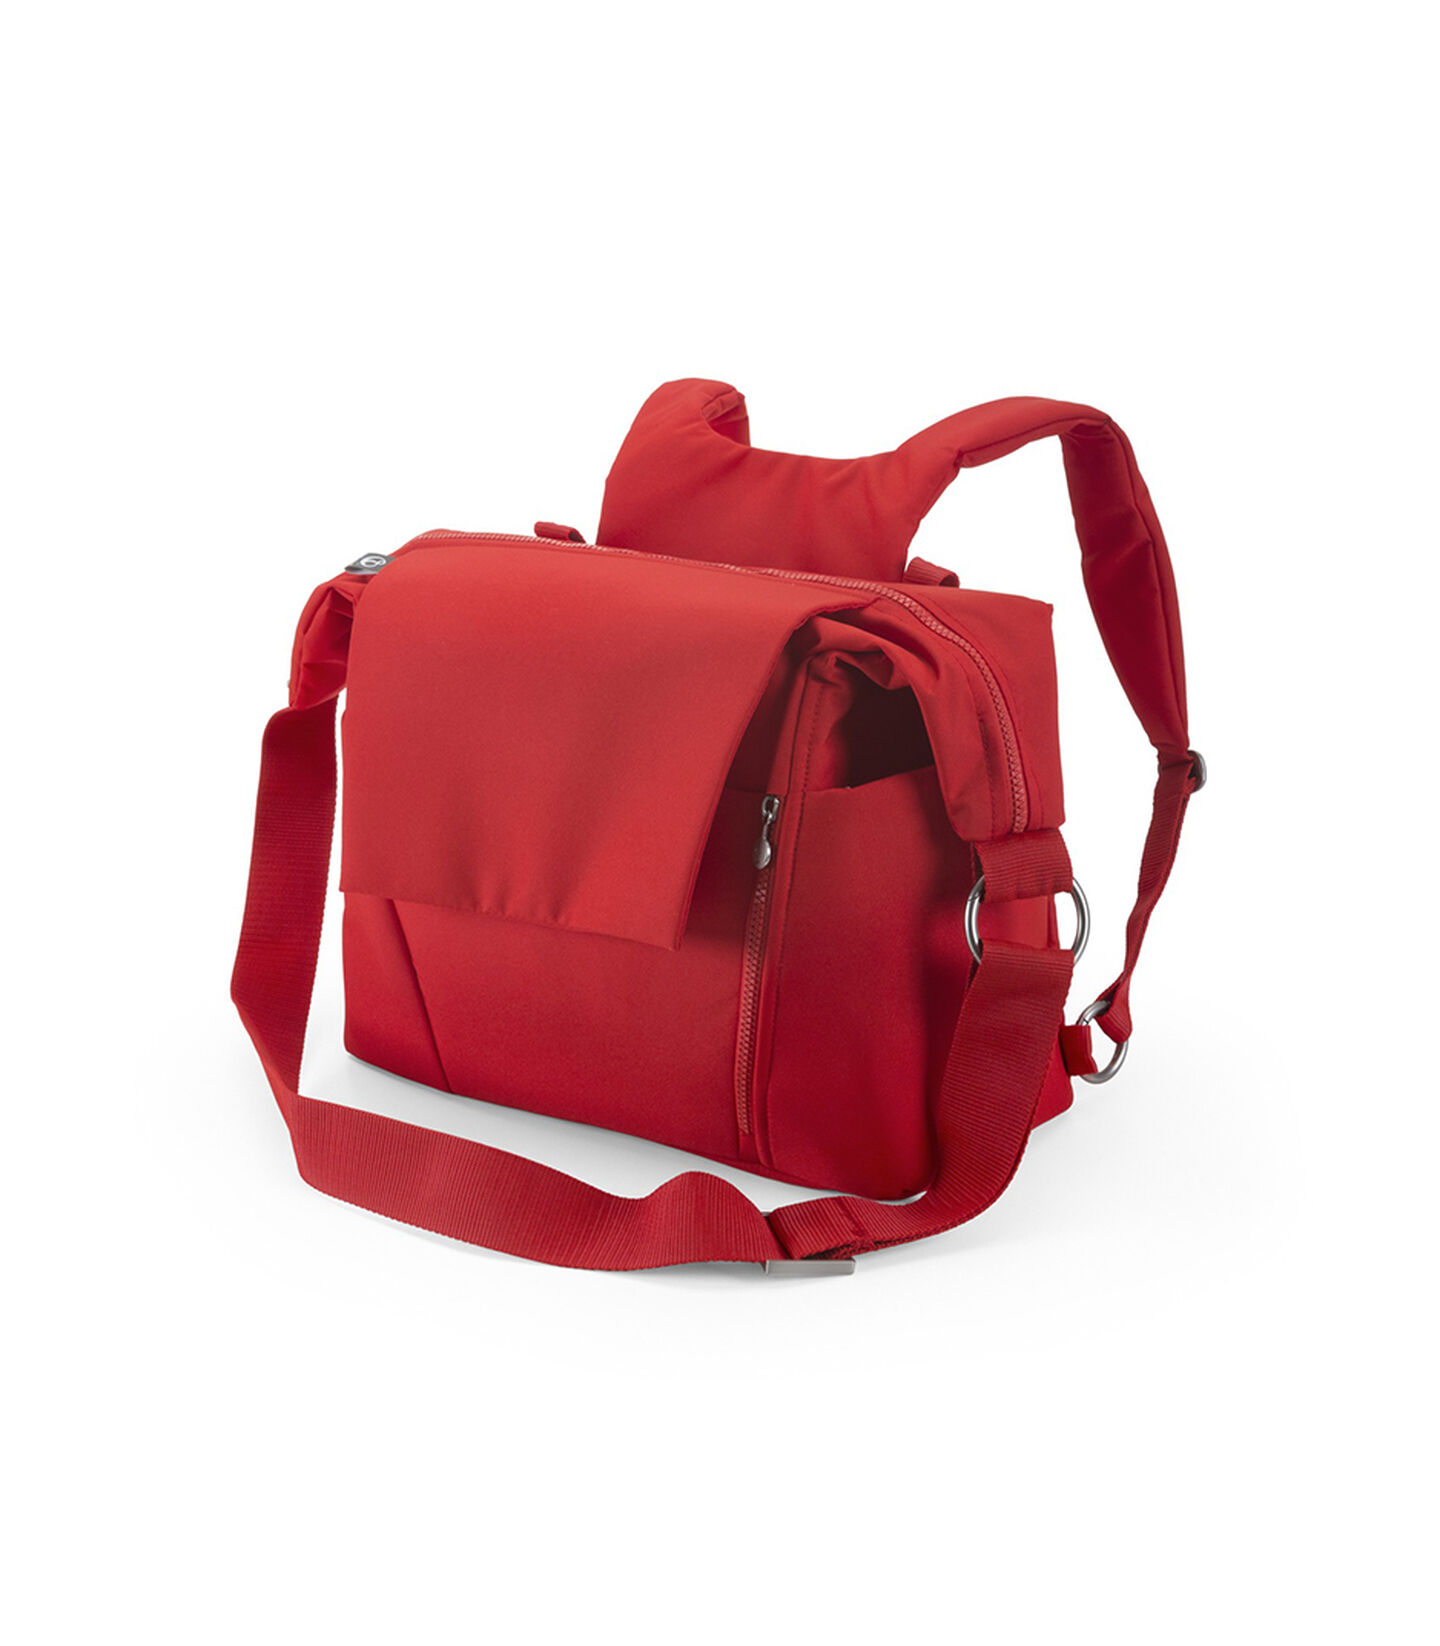 Stokke® Stroller Changing Bag, Red.